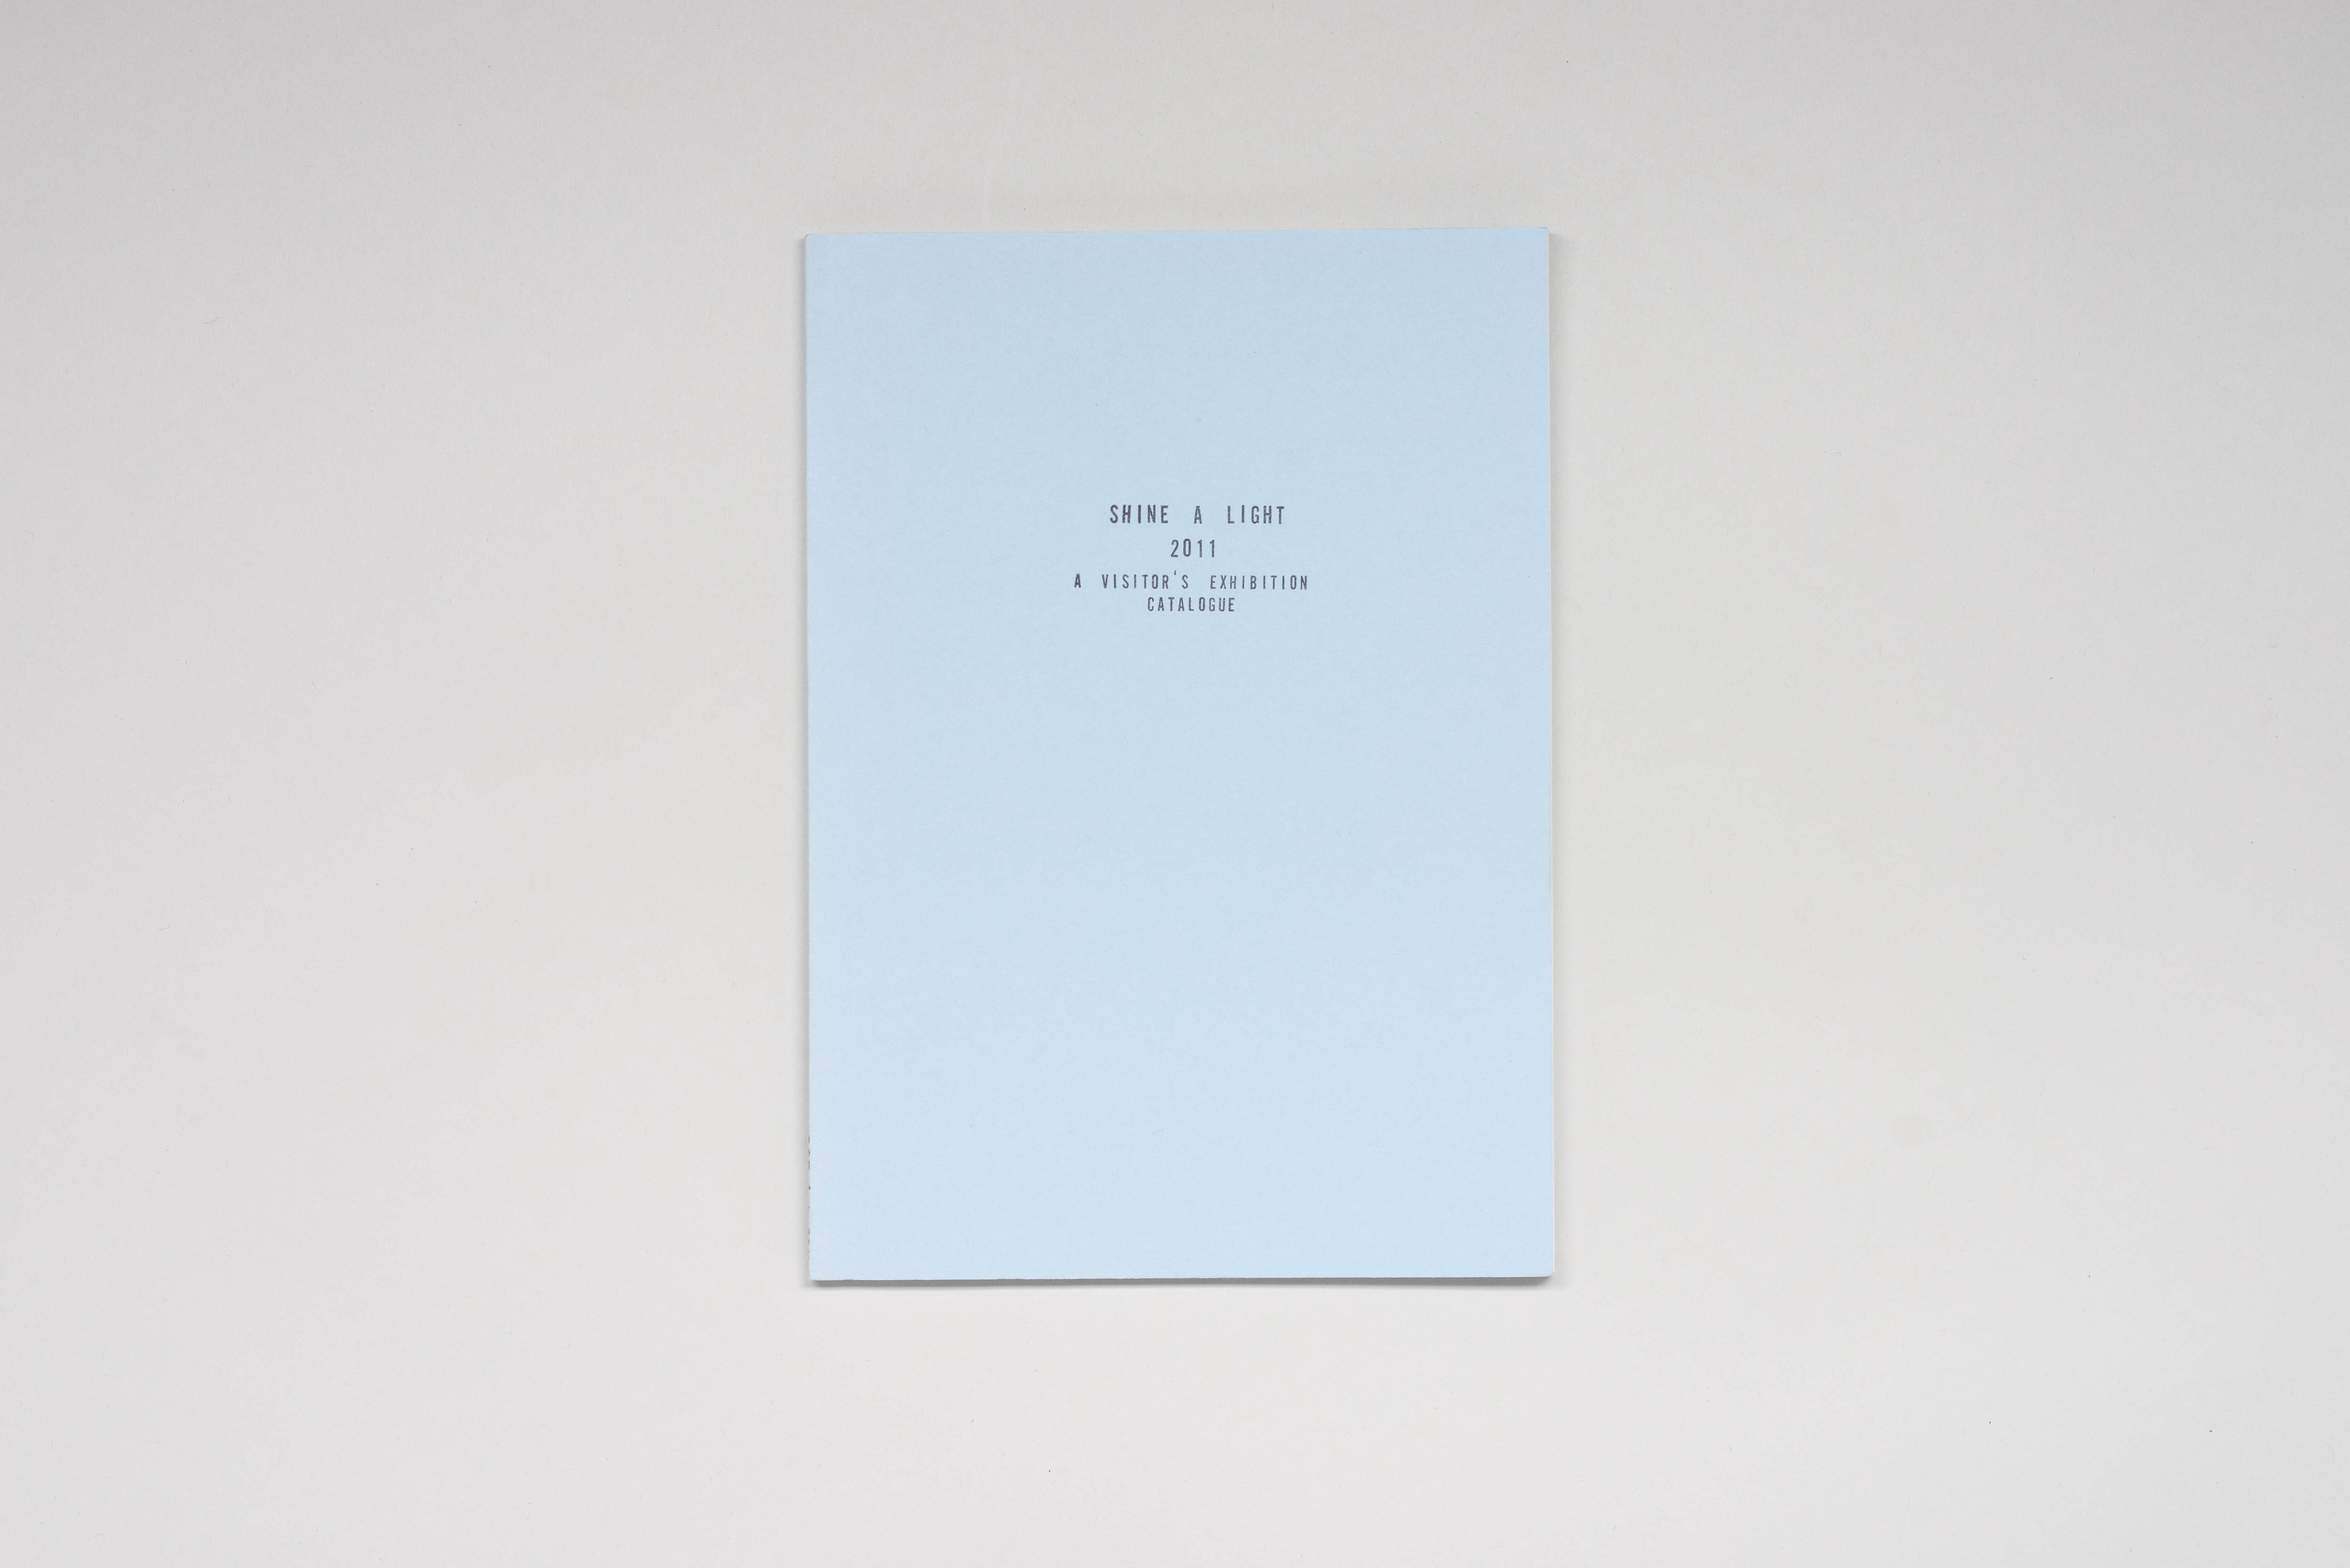 A Visitor's Exhibition Catalog - Molly Sherman